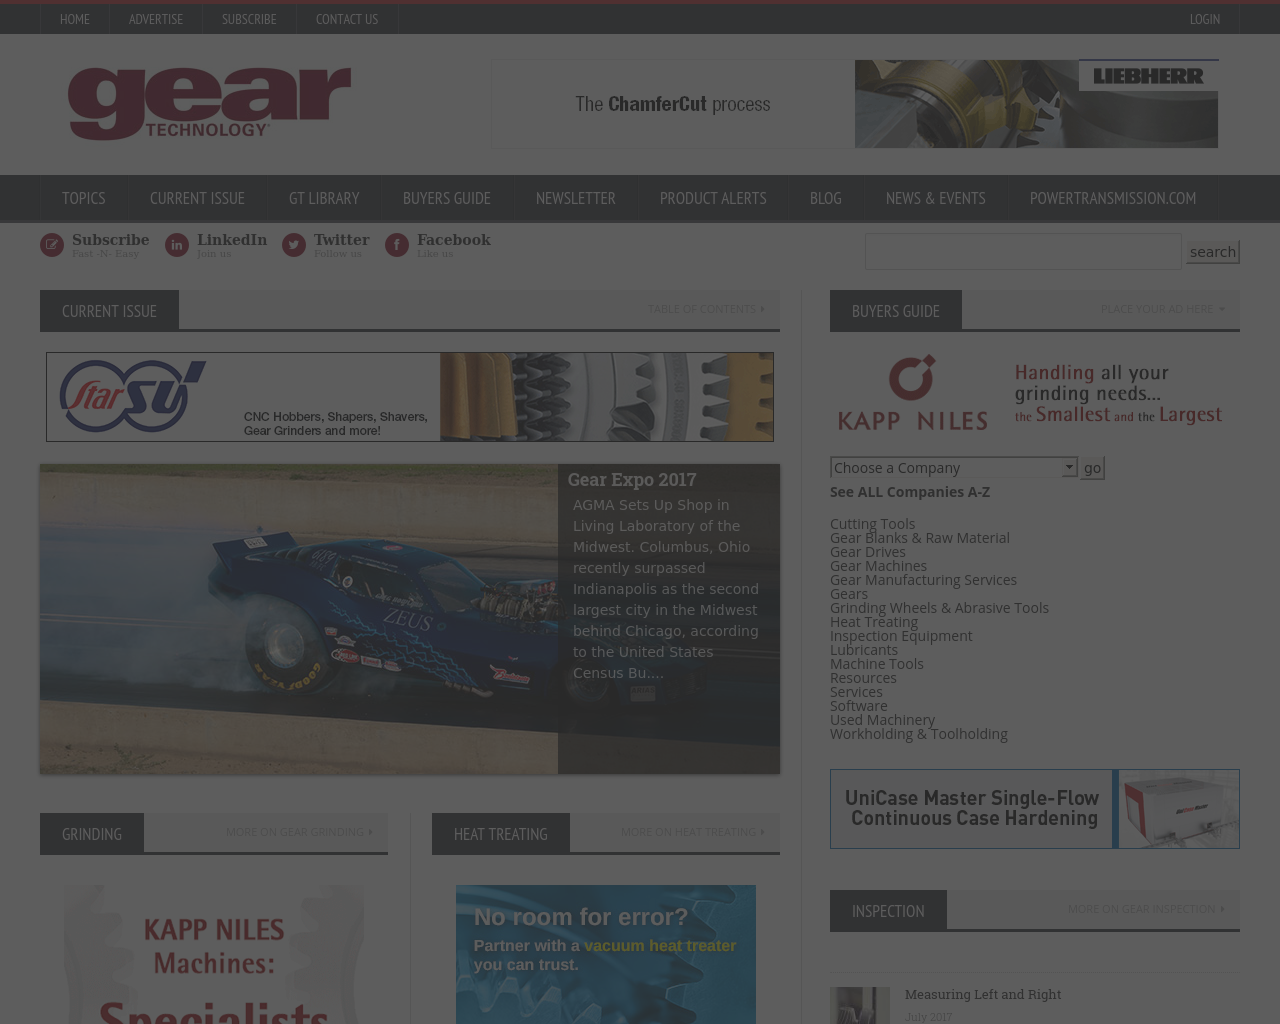 Gear-Technology-Advertising-Reviews-Pricing